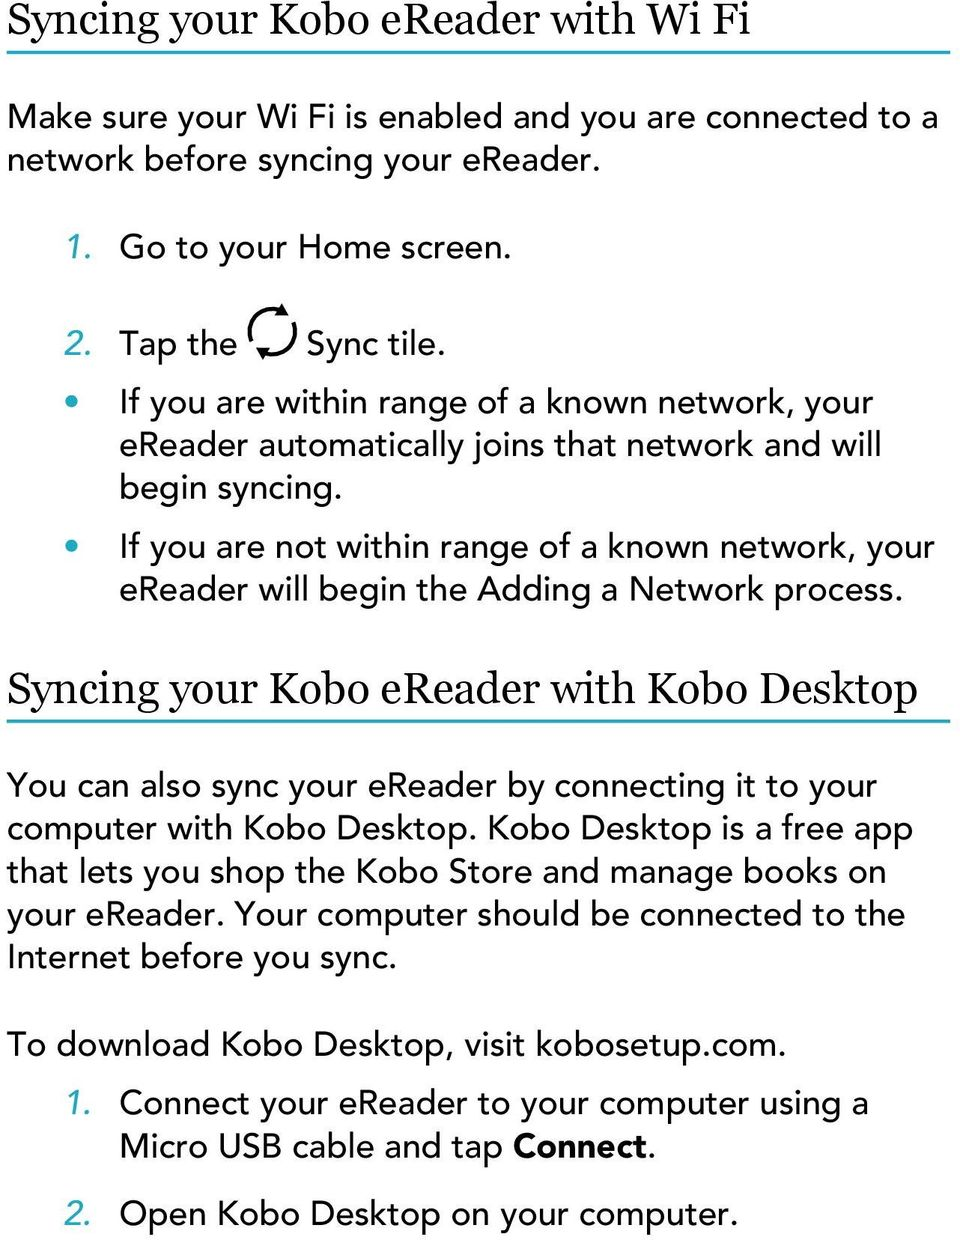 About your Kobo ereader PDF